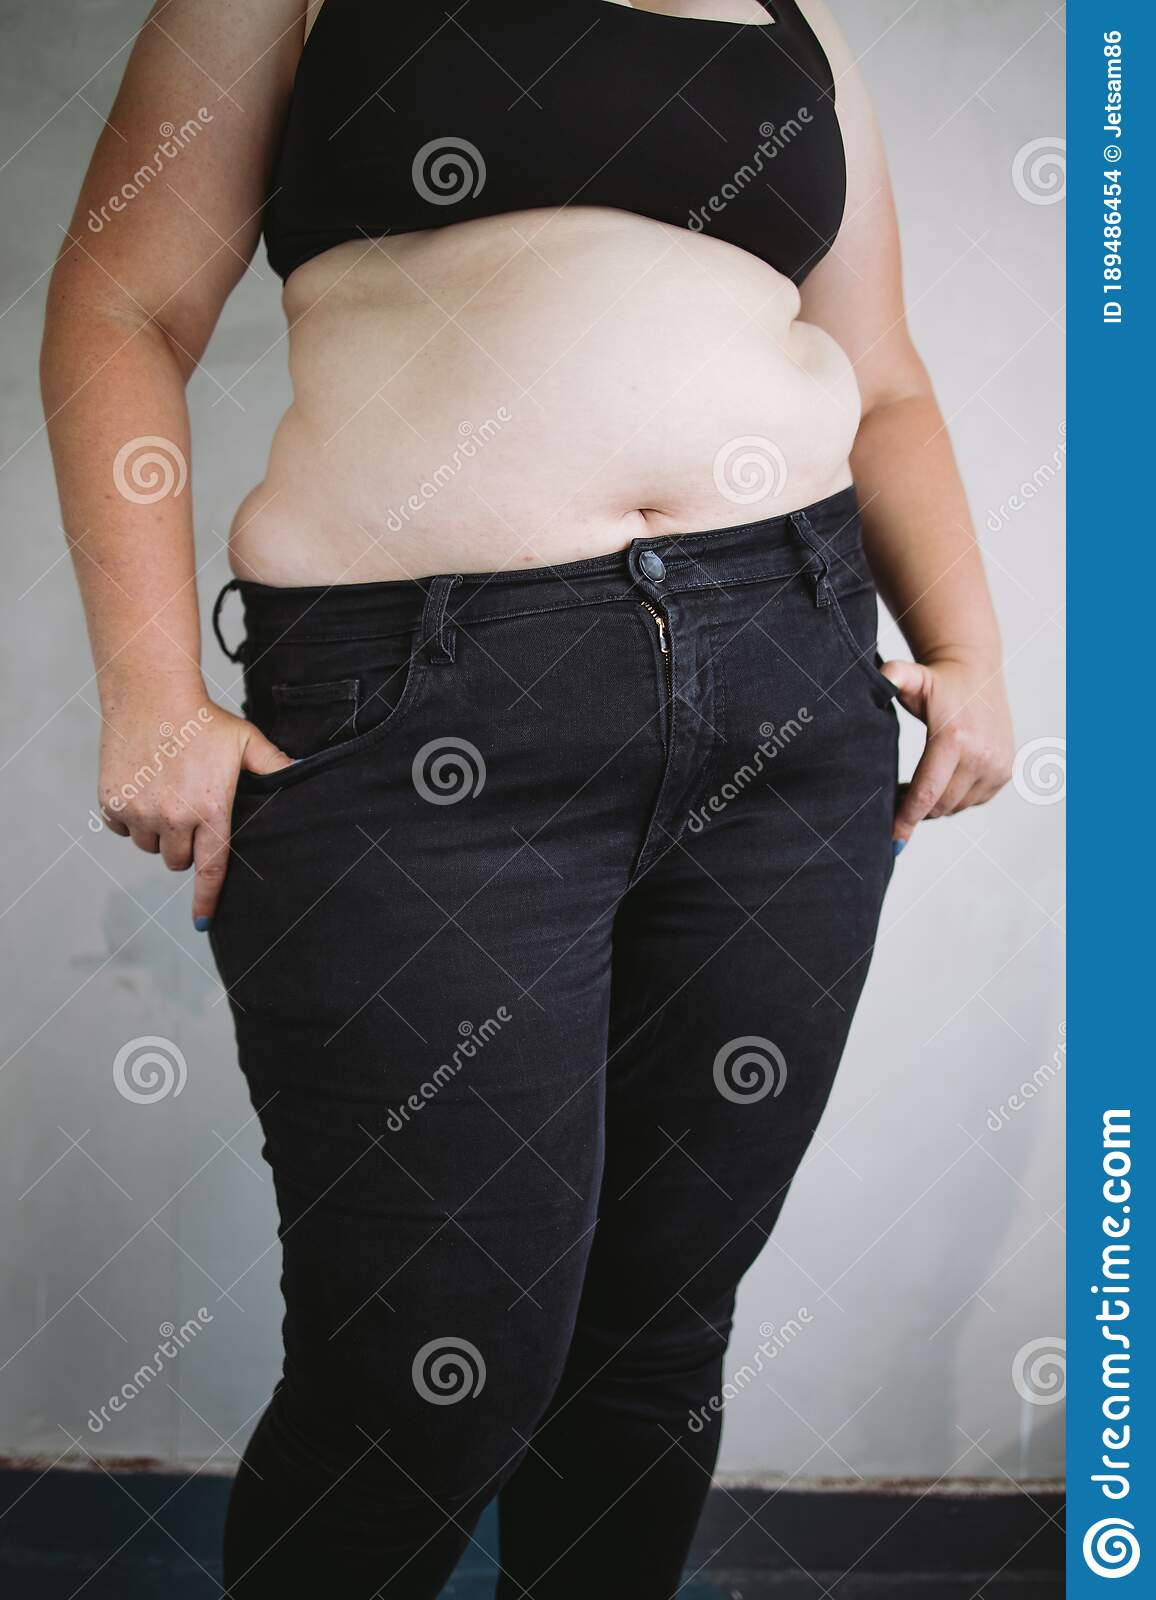 Overweight Woman With Obese Body Weight Loss Stock Photo Image Of Lifestyle Health 189486454